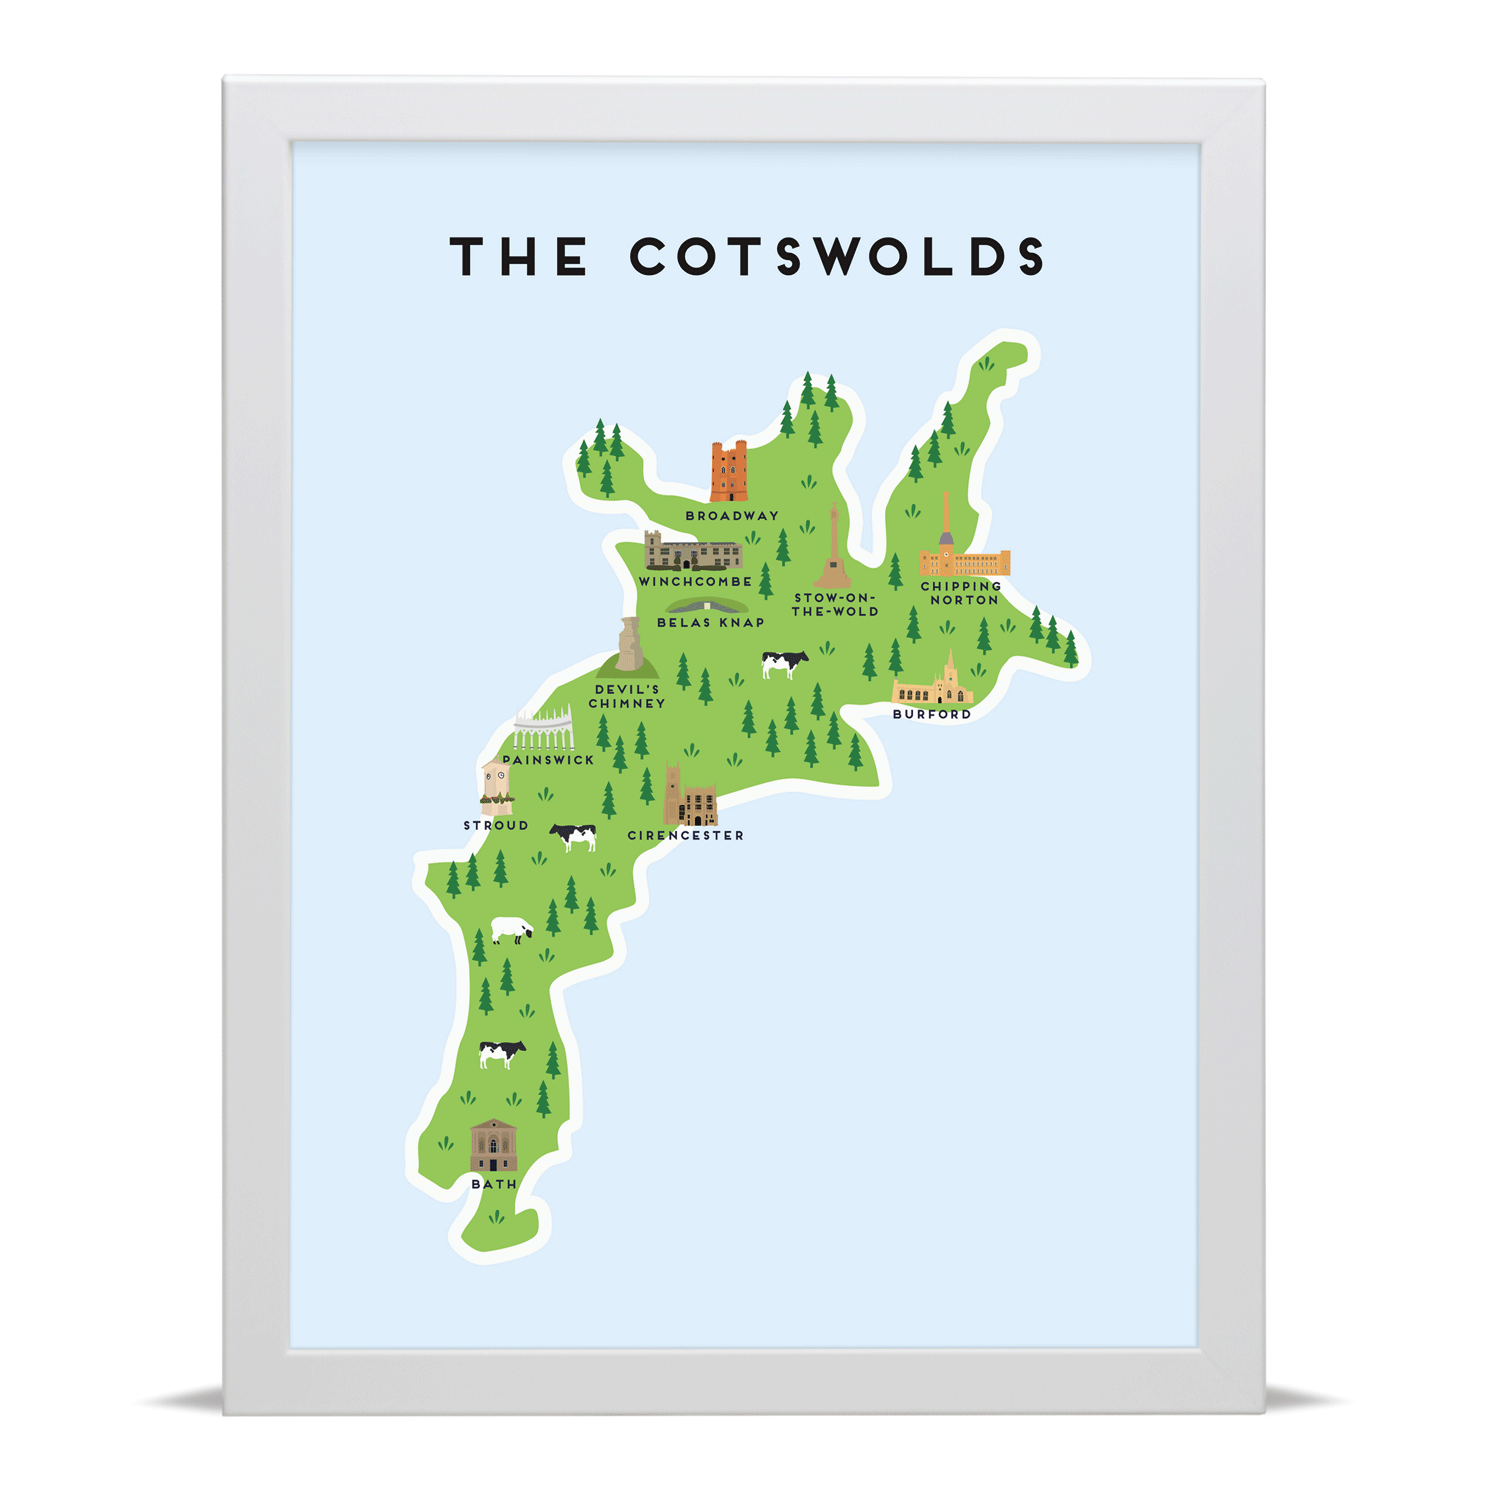 Place in Print Pepper Pot Studios The Cotswolds Illustrated Map Art Print